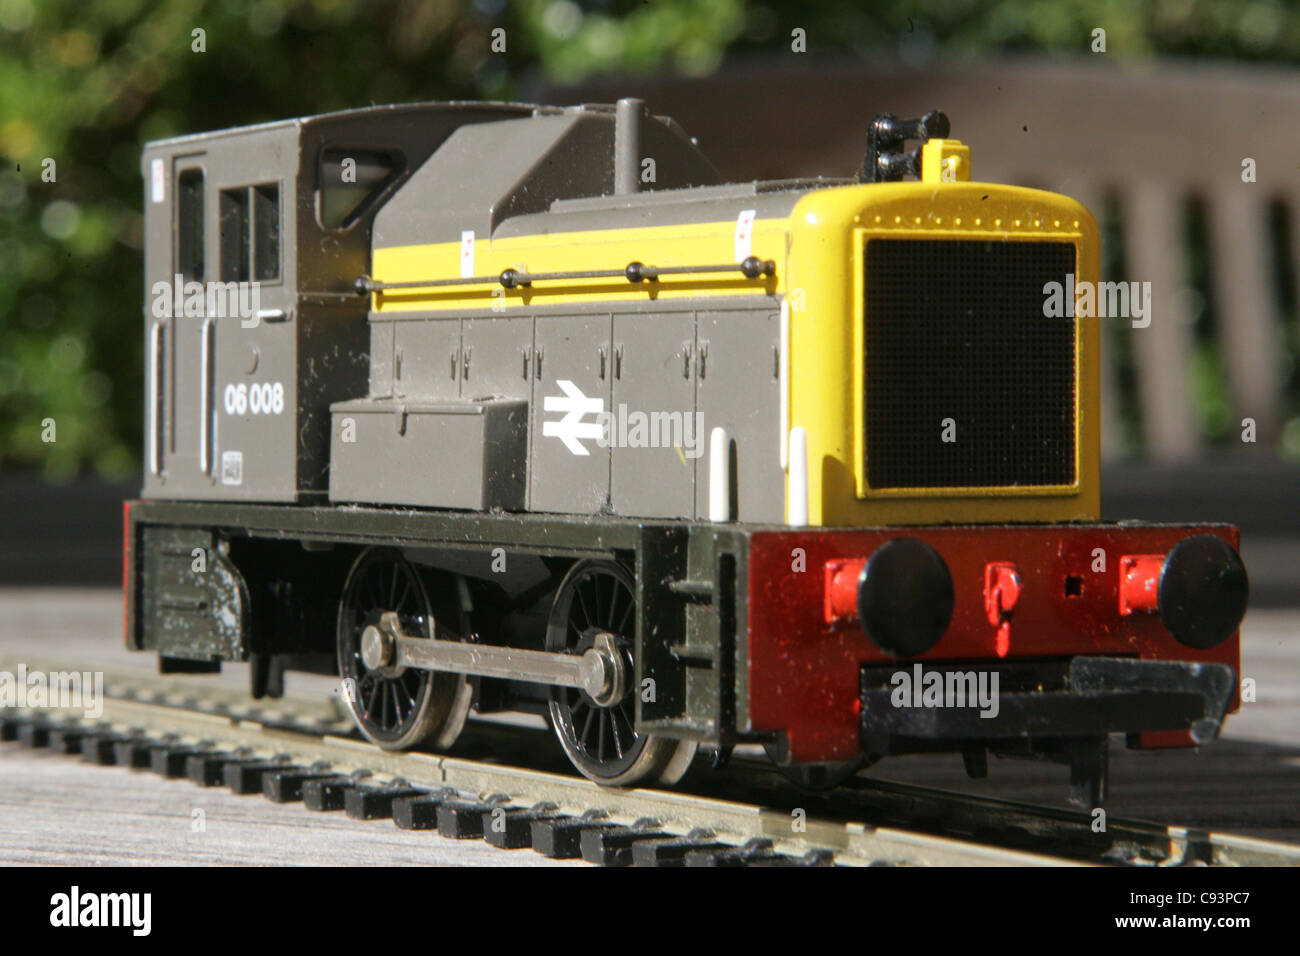 A series of OO scale (in UK Ireland) and HO scale Model